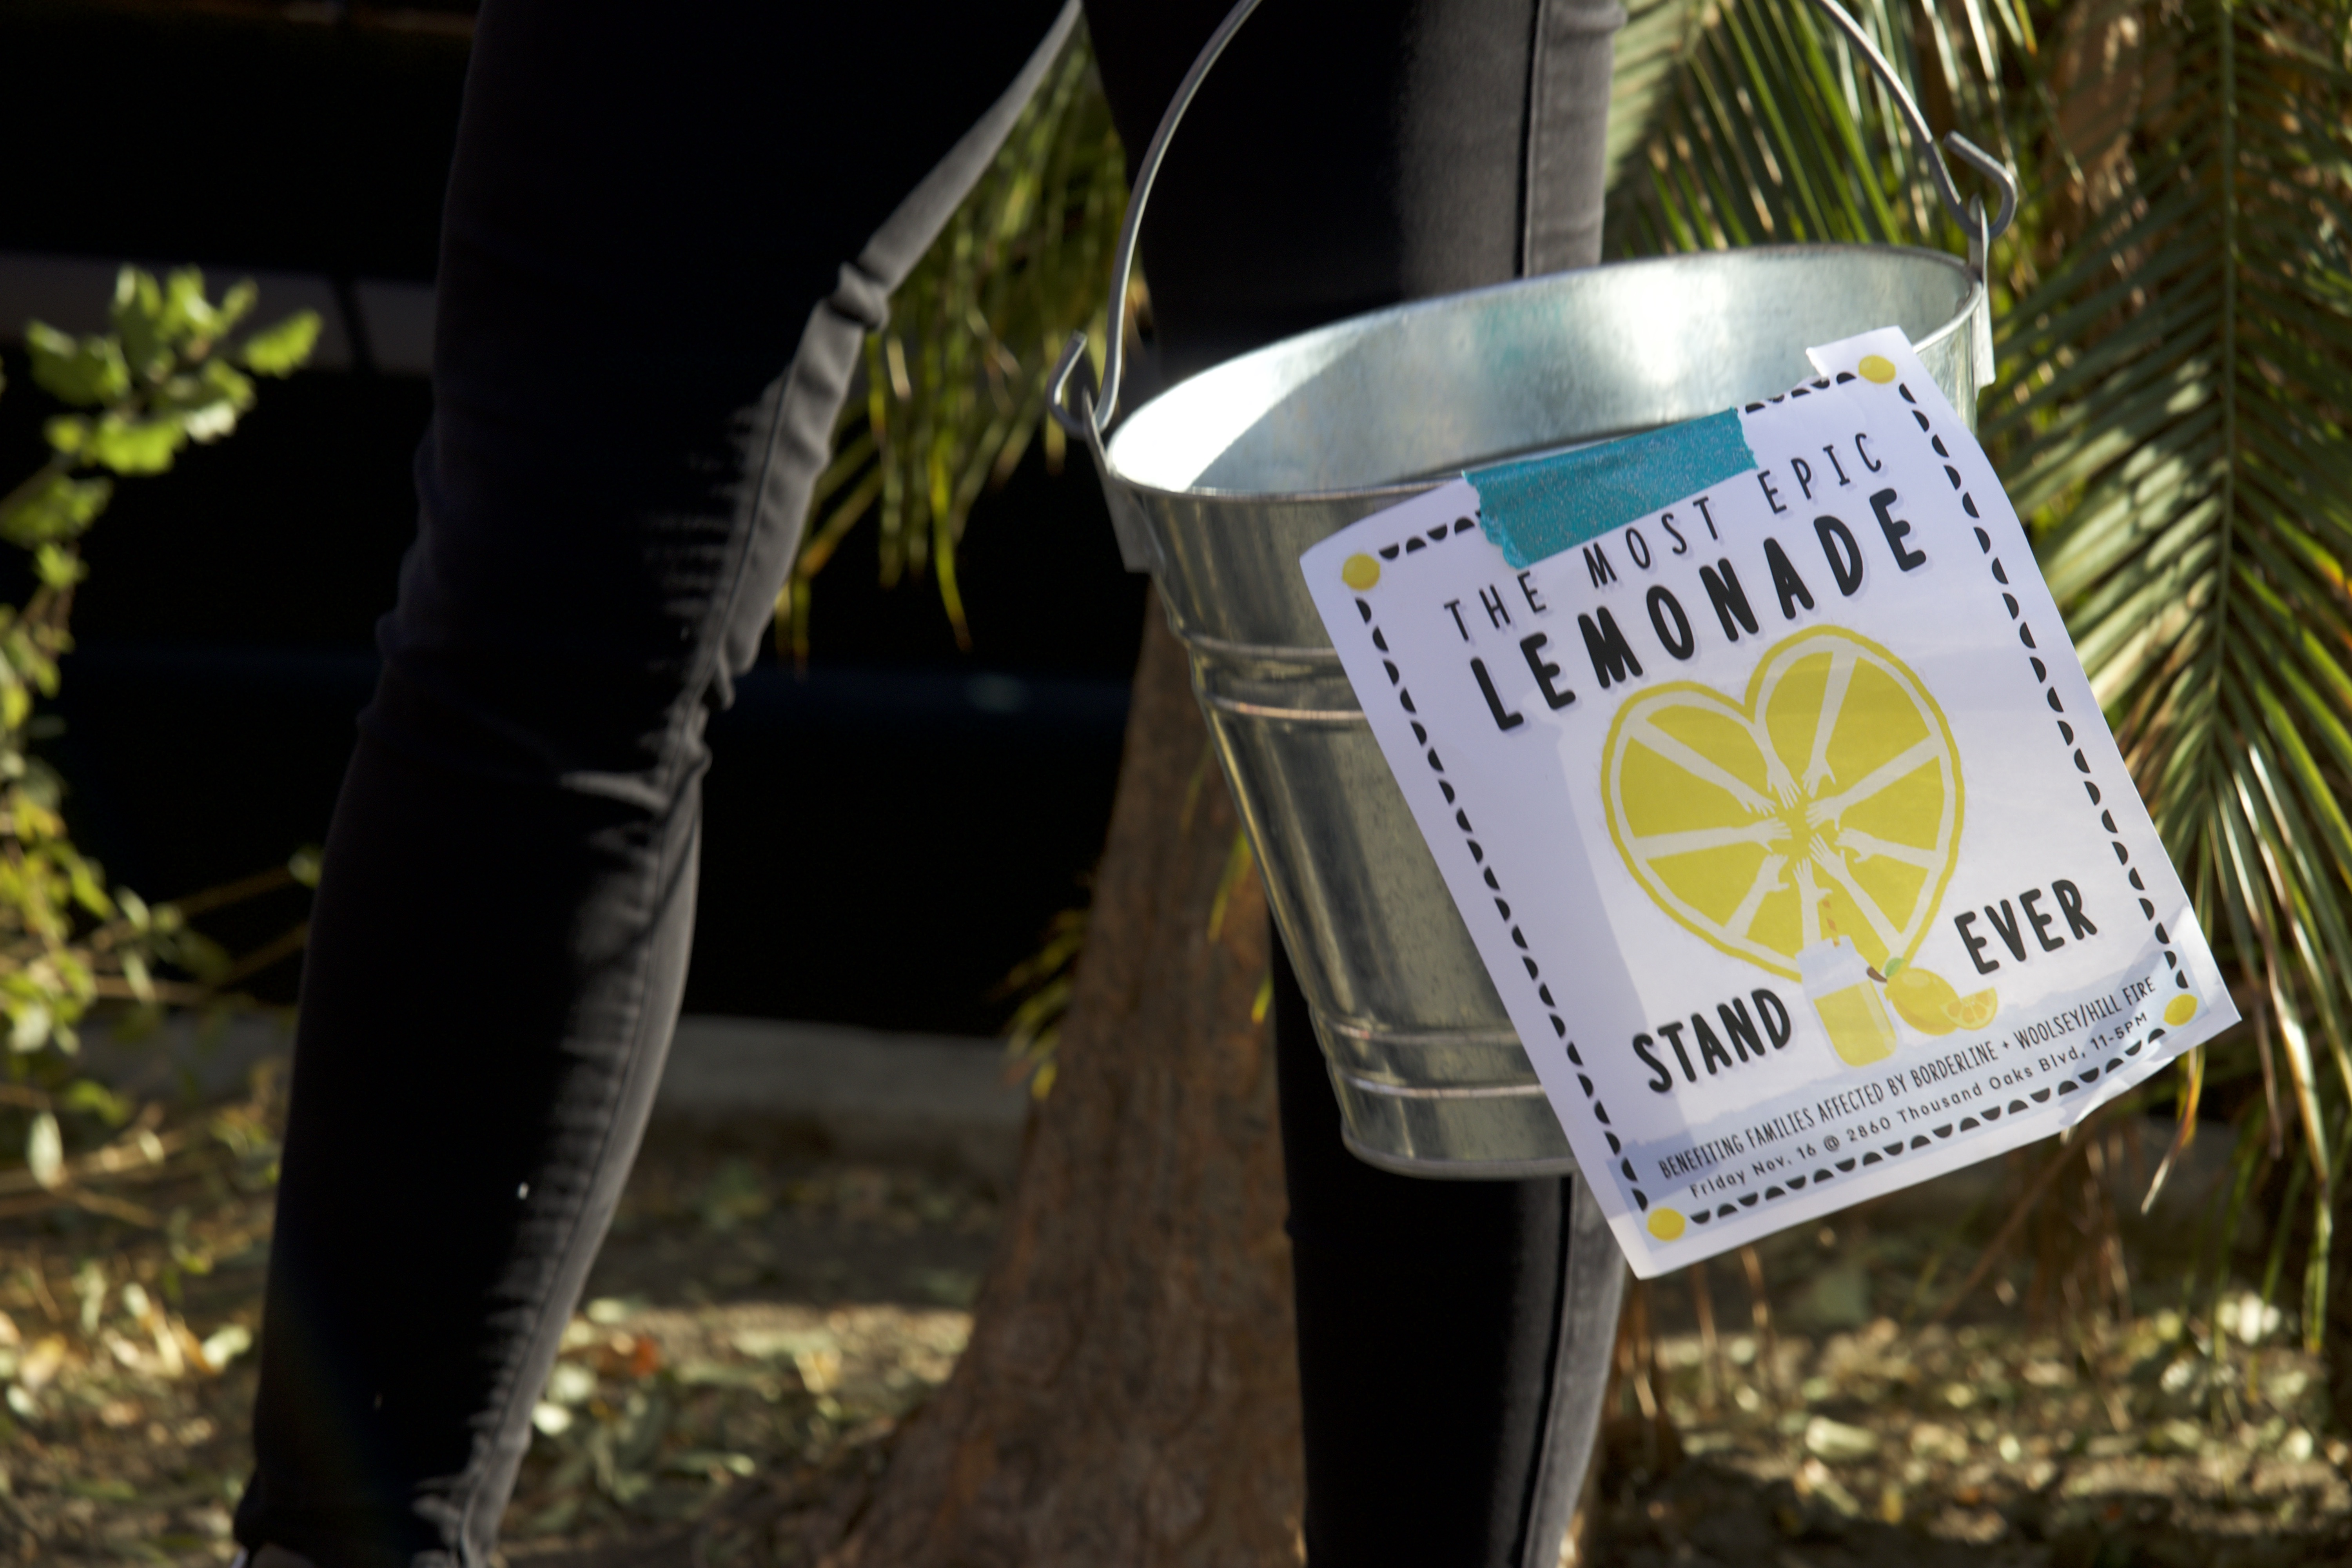 IMG 5570 Community raises money for shooting, wildfire victims by selling Epic Lemonade